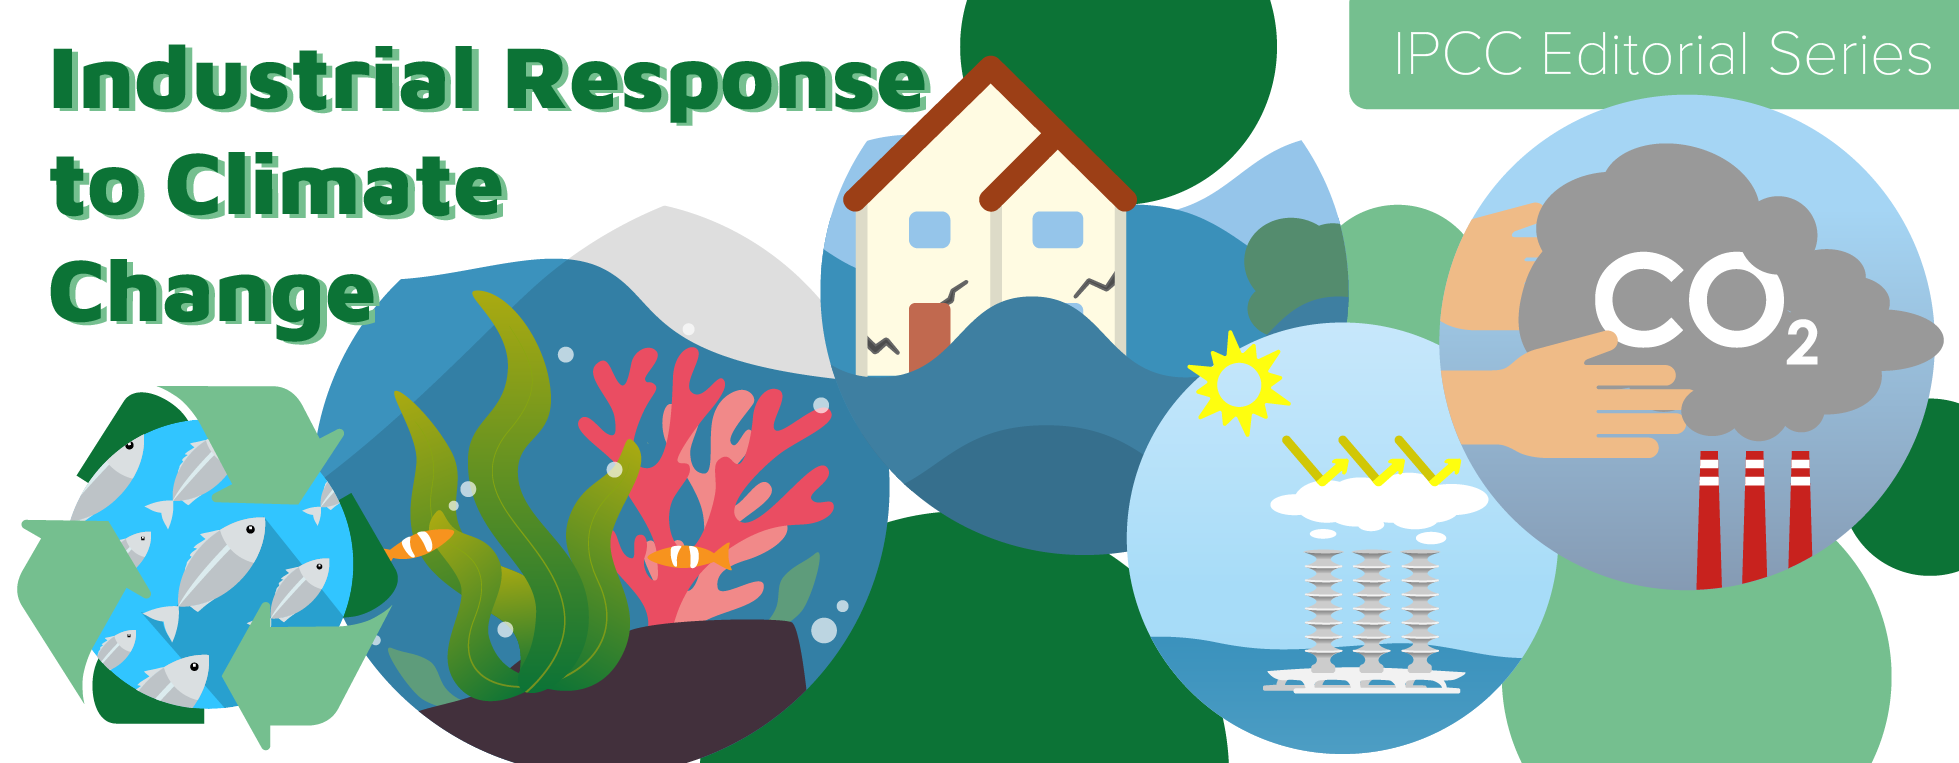 IPCC Editorial Series: Industrial Response to Climate Change